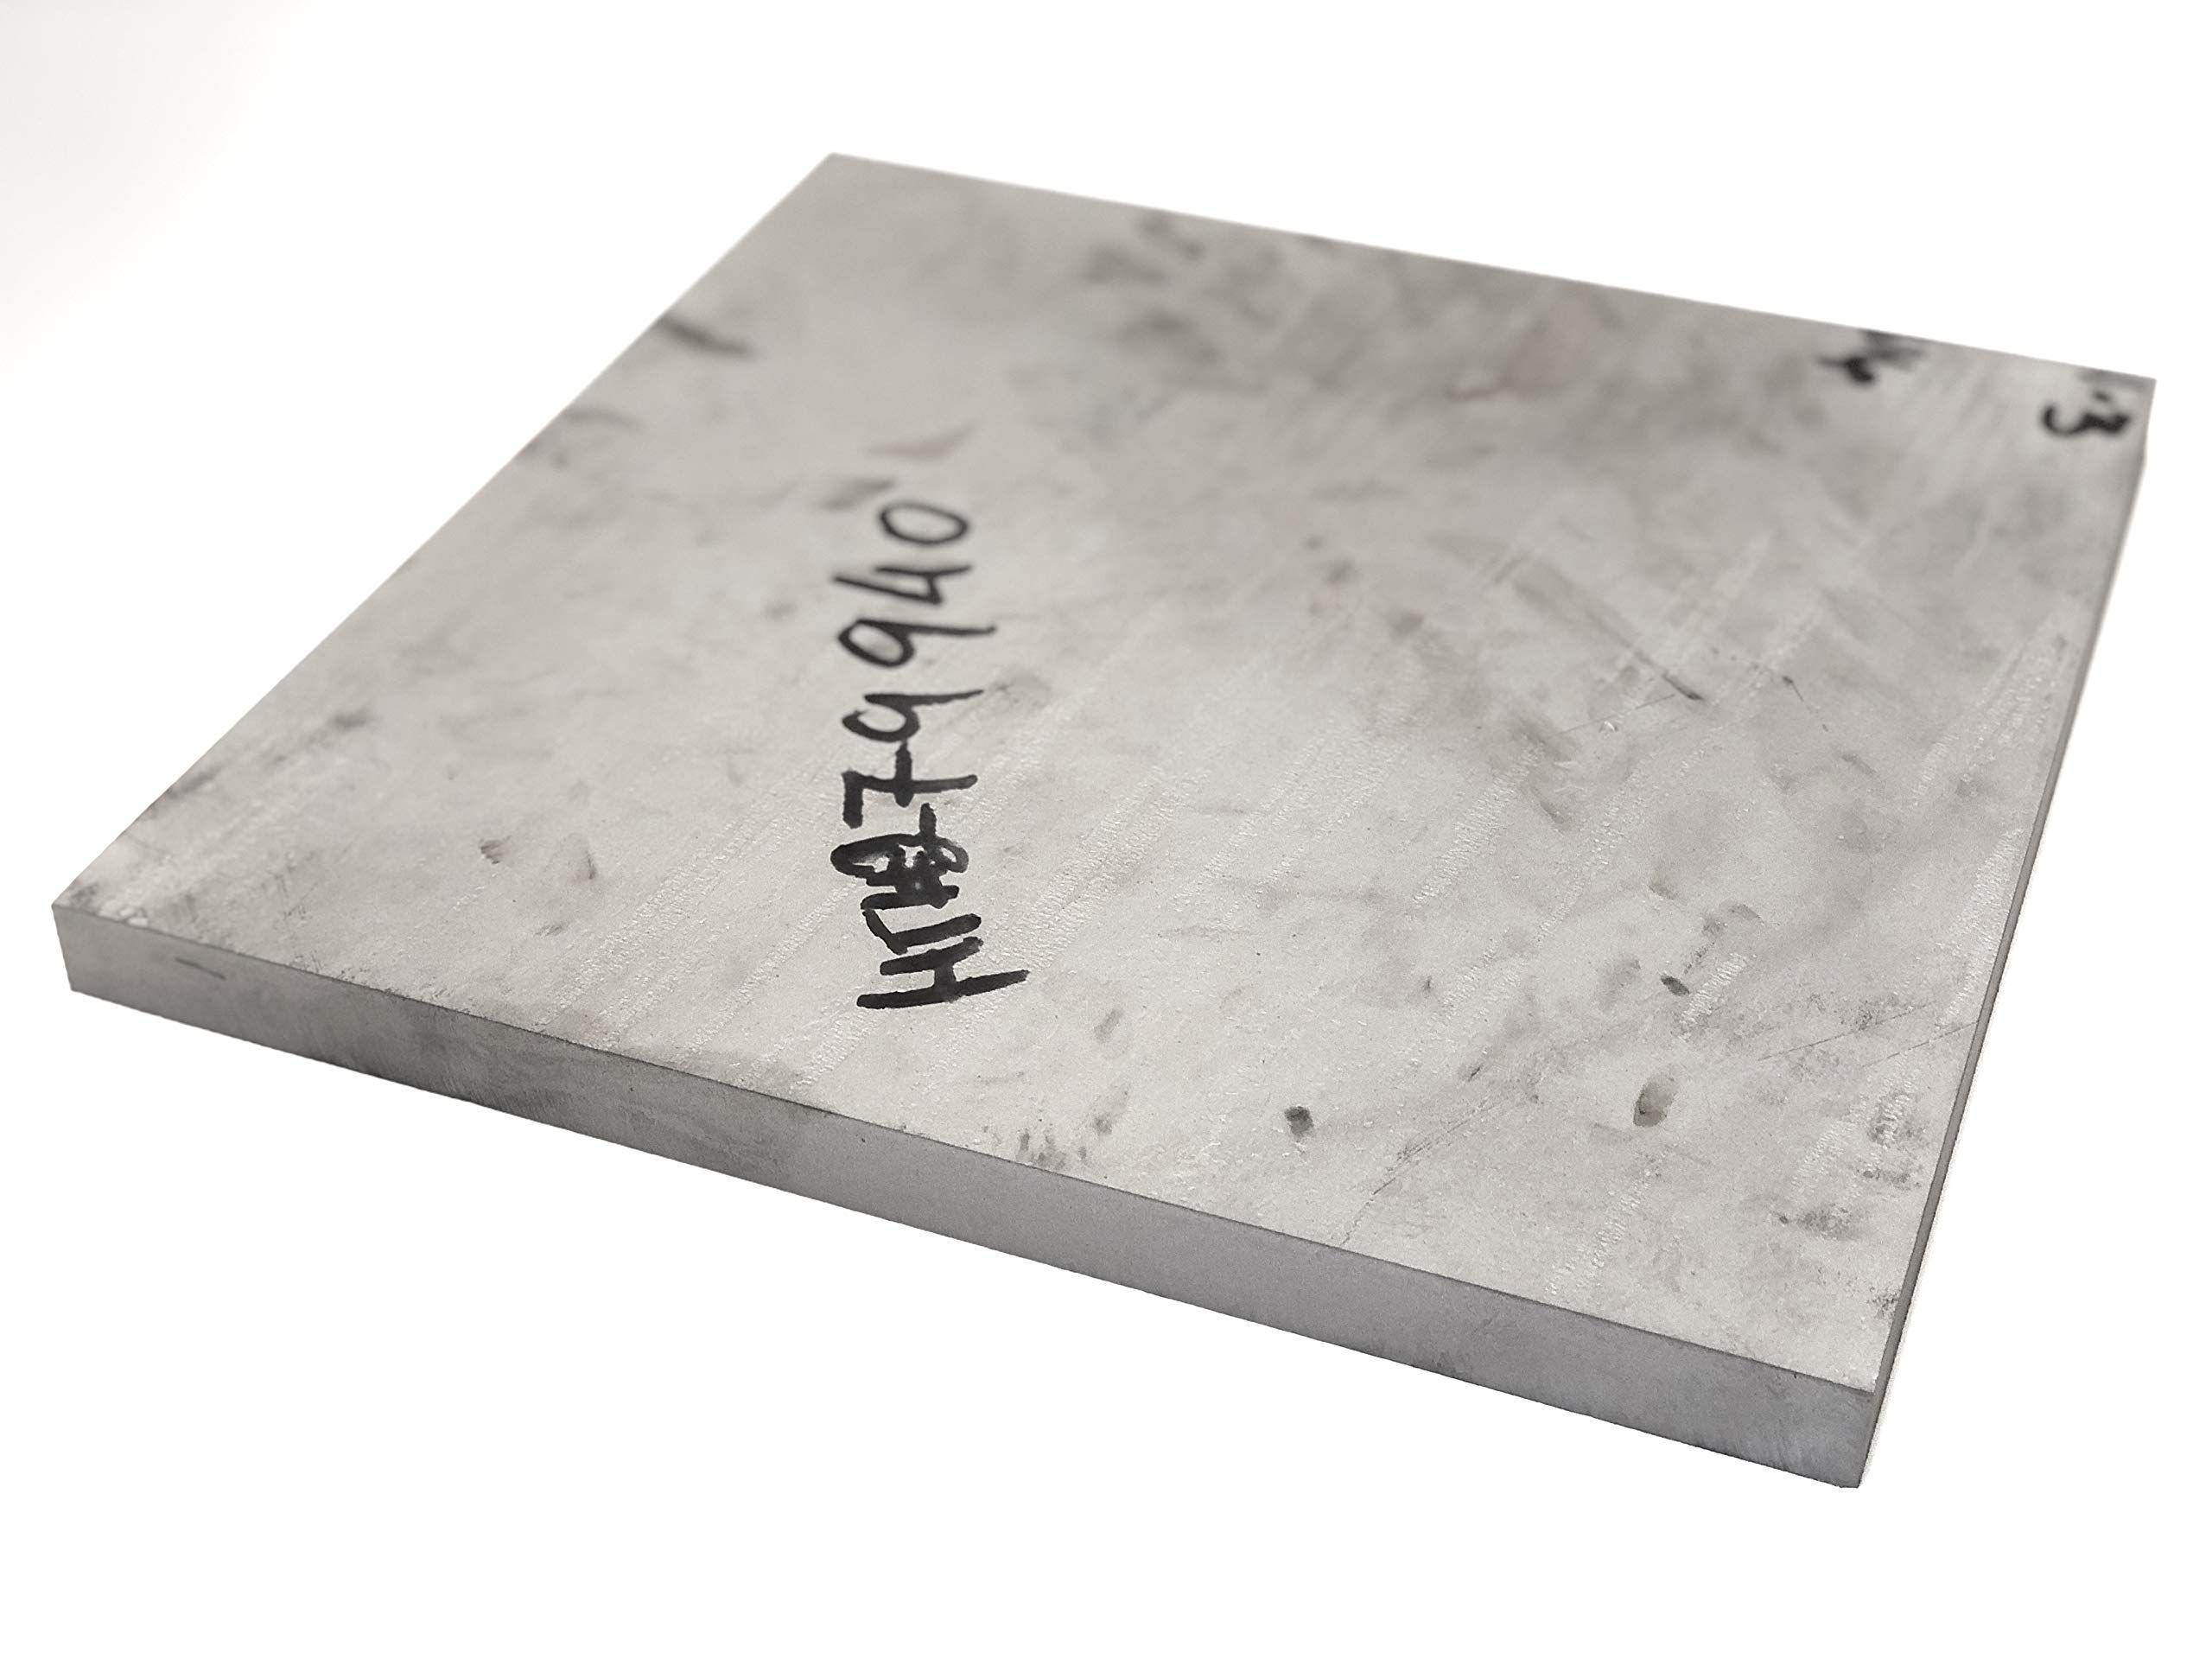 750 Inch 316 Stainless Steel 12 X 12 Plate Mill Finish Ad Stainless Sponsored Inch Steel Stainless Steel Plate 316 Stainless Steel Stainless Steel